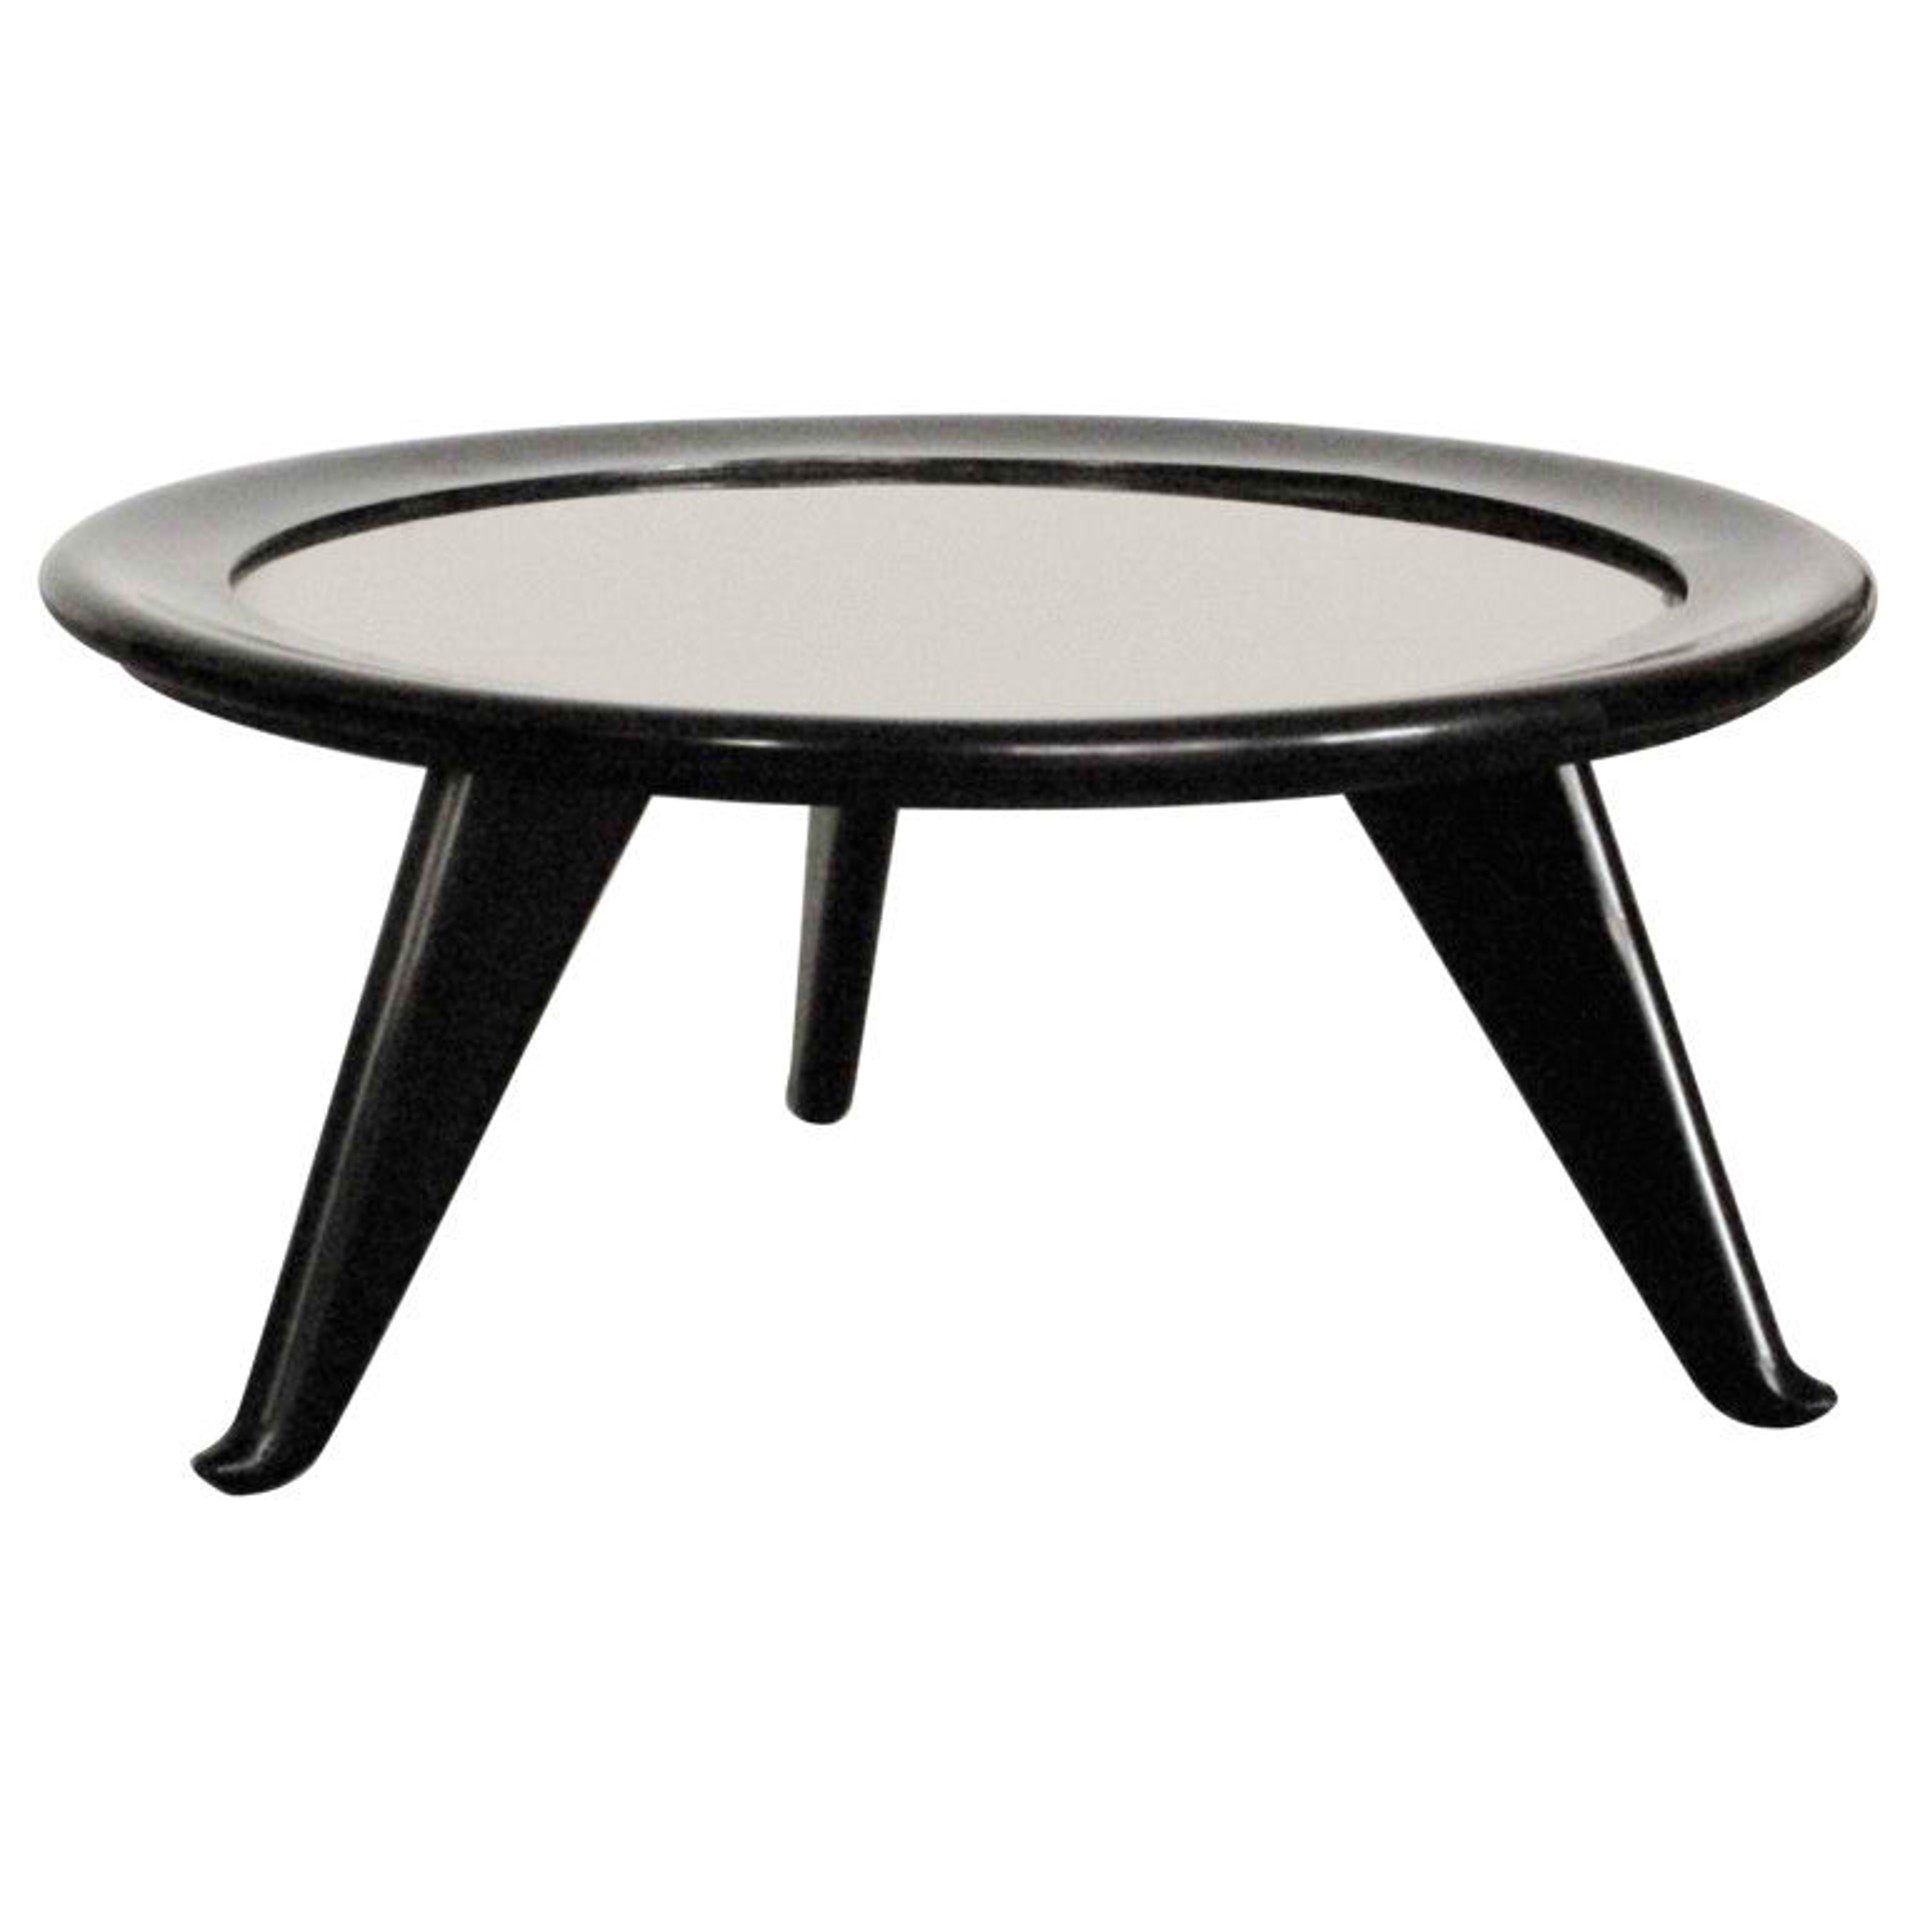 Maurice Jallot coffee table by Vintage Jallot